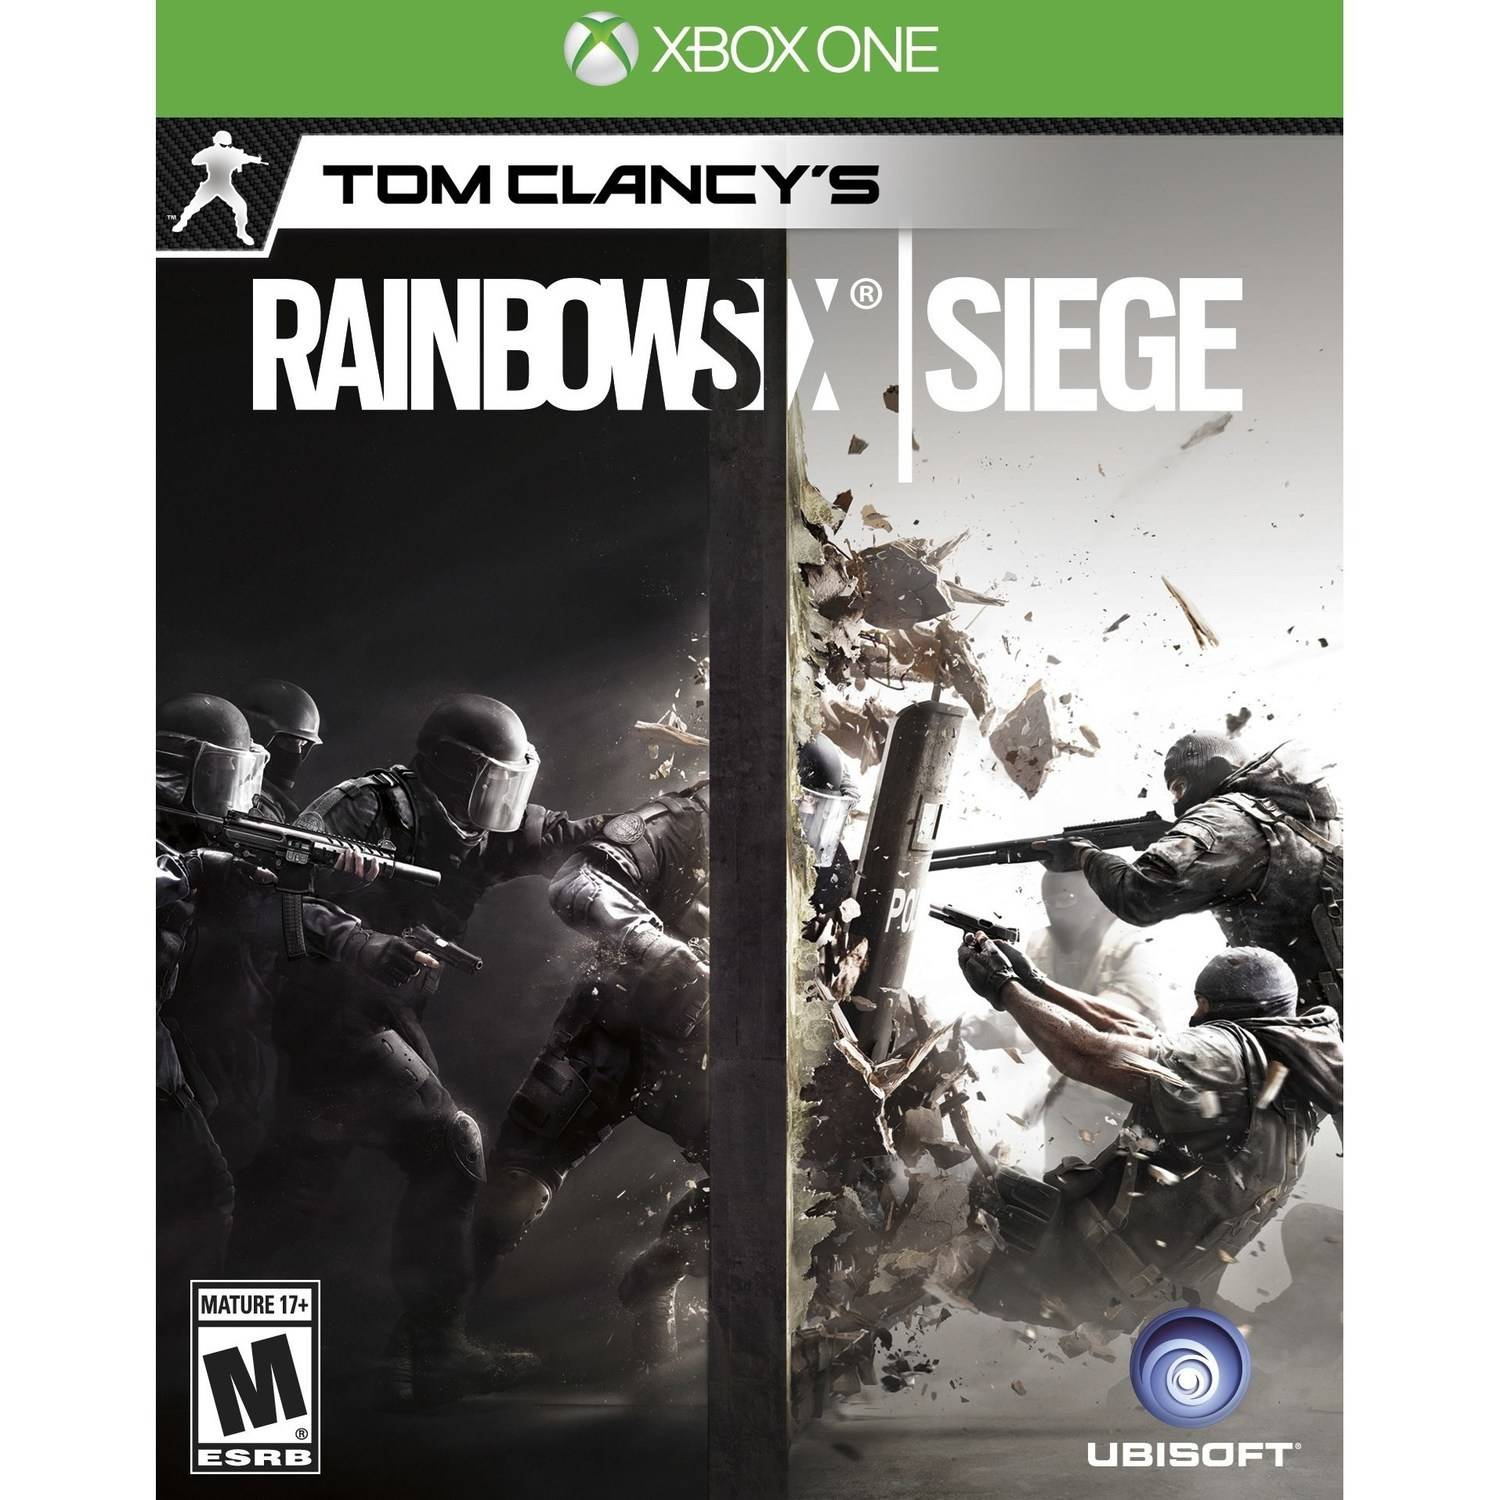 Tom Clancy's Rainbow Six: Siege (Xbox One) by Ubisoft Montreal